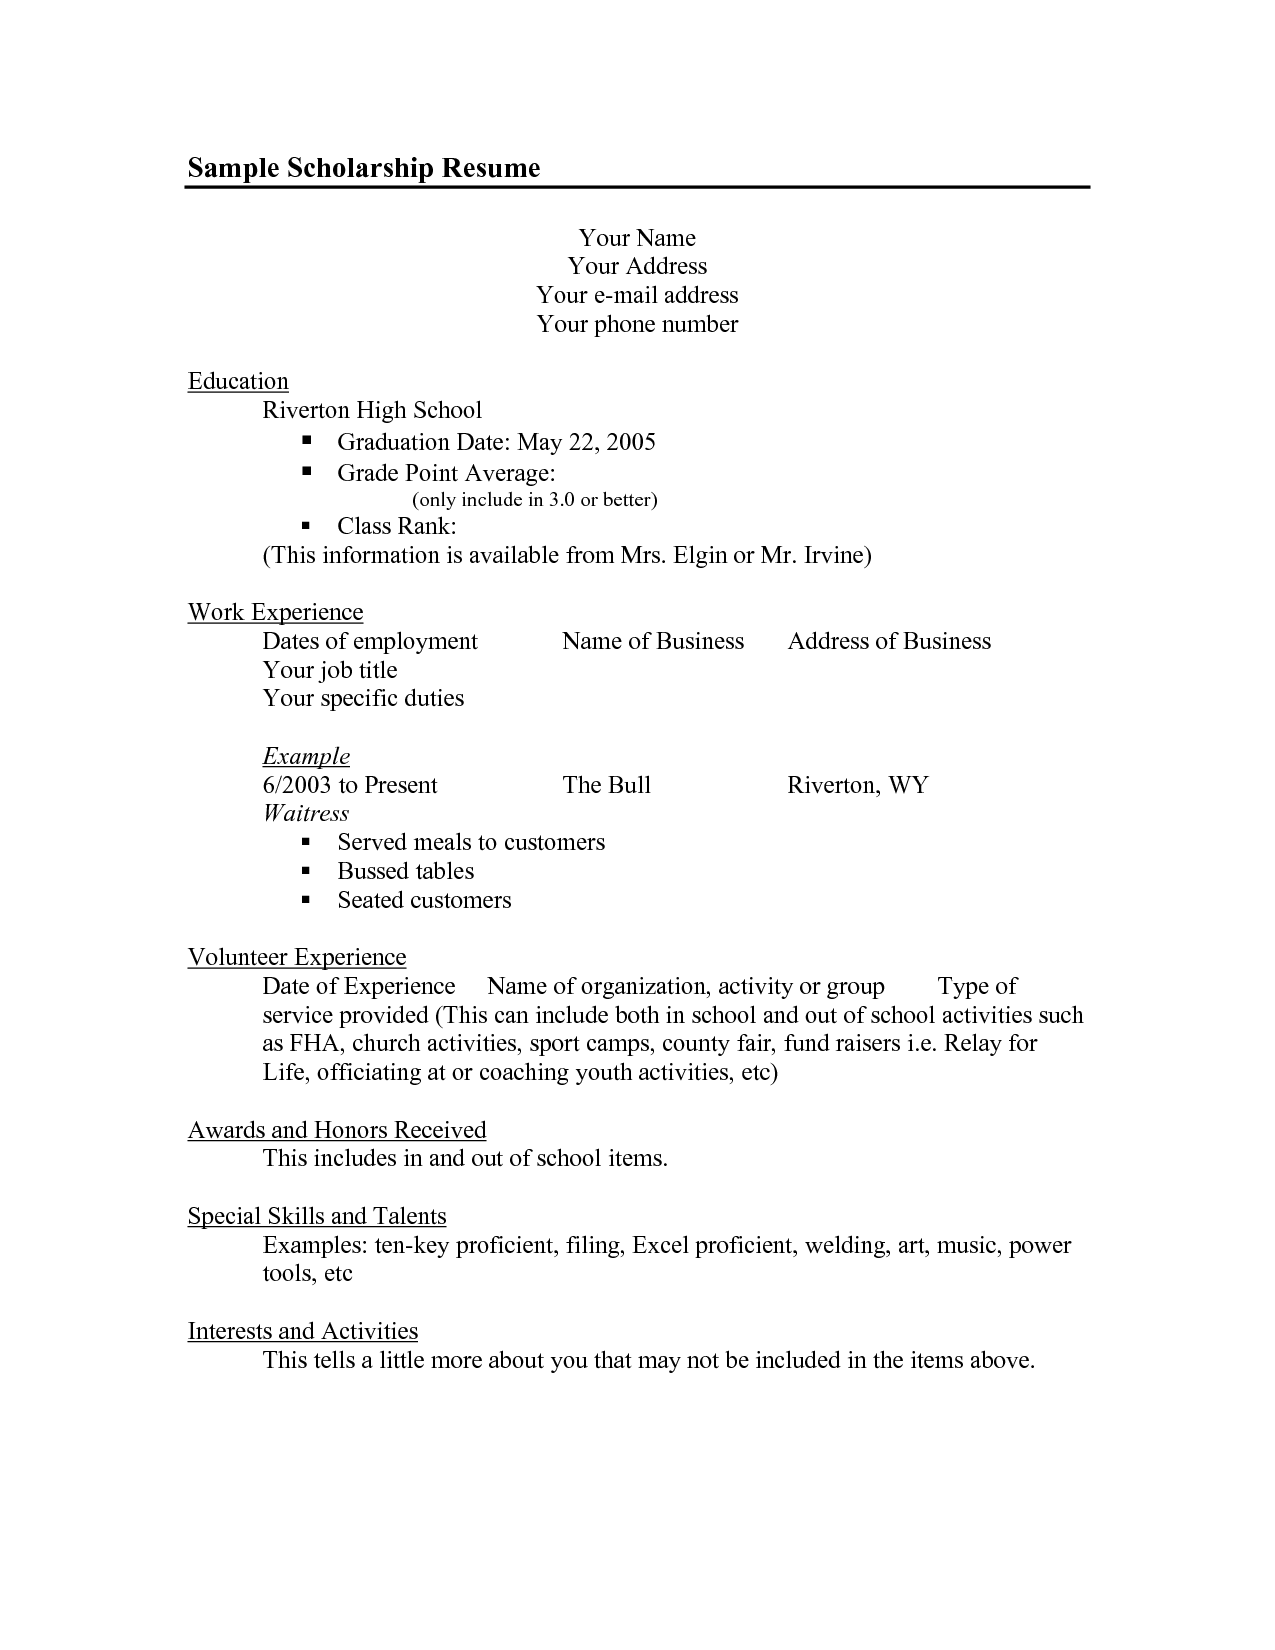 Nursing School Resume Scholarship Resume Templates  Sample Scholarship Resume